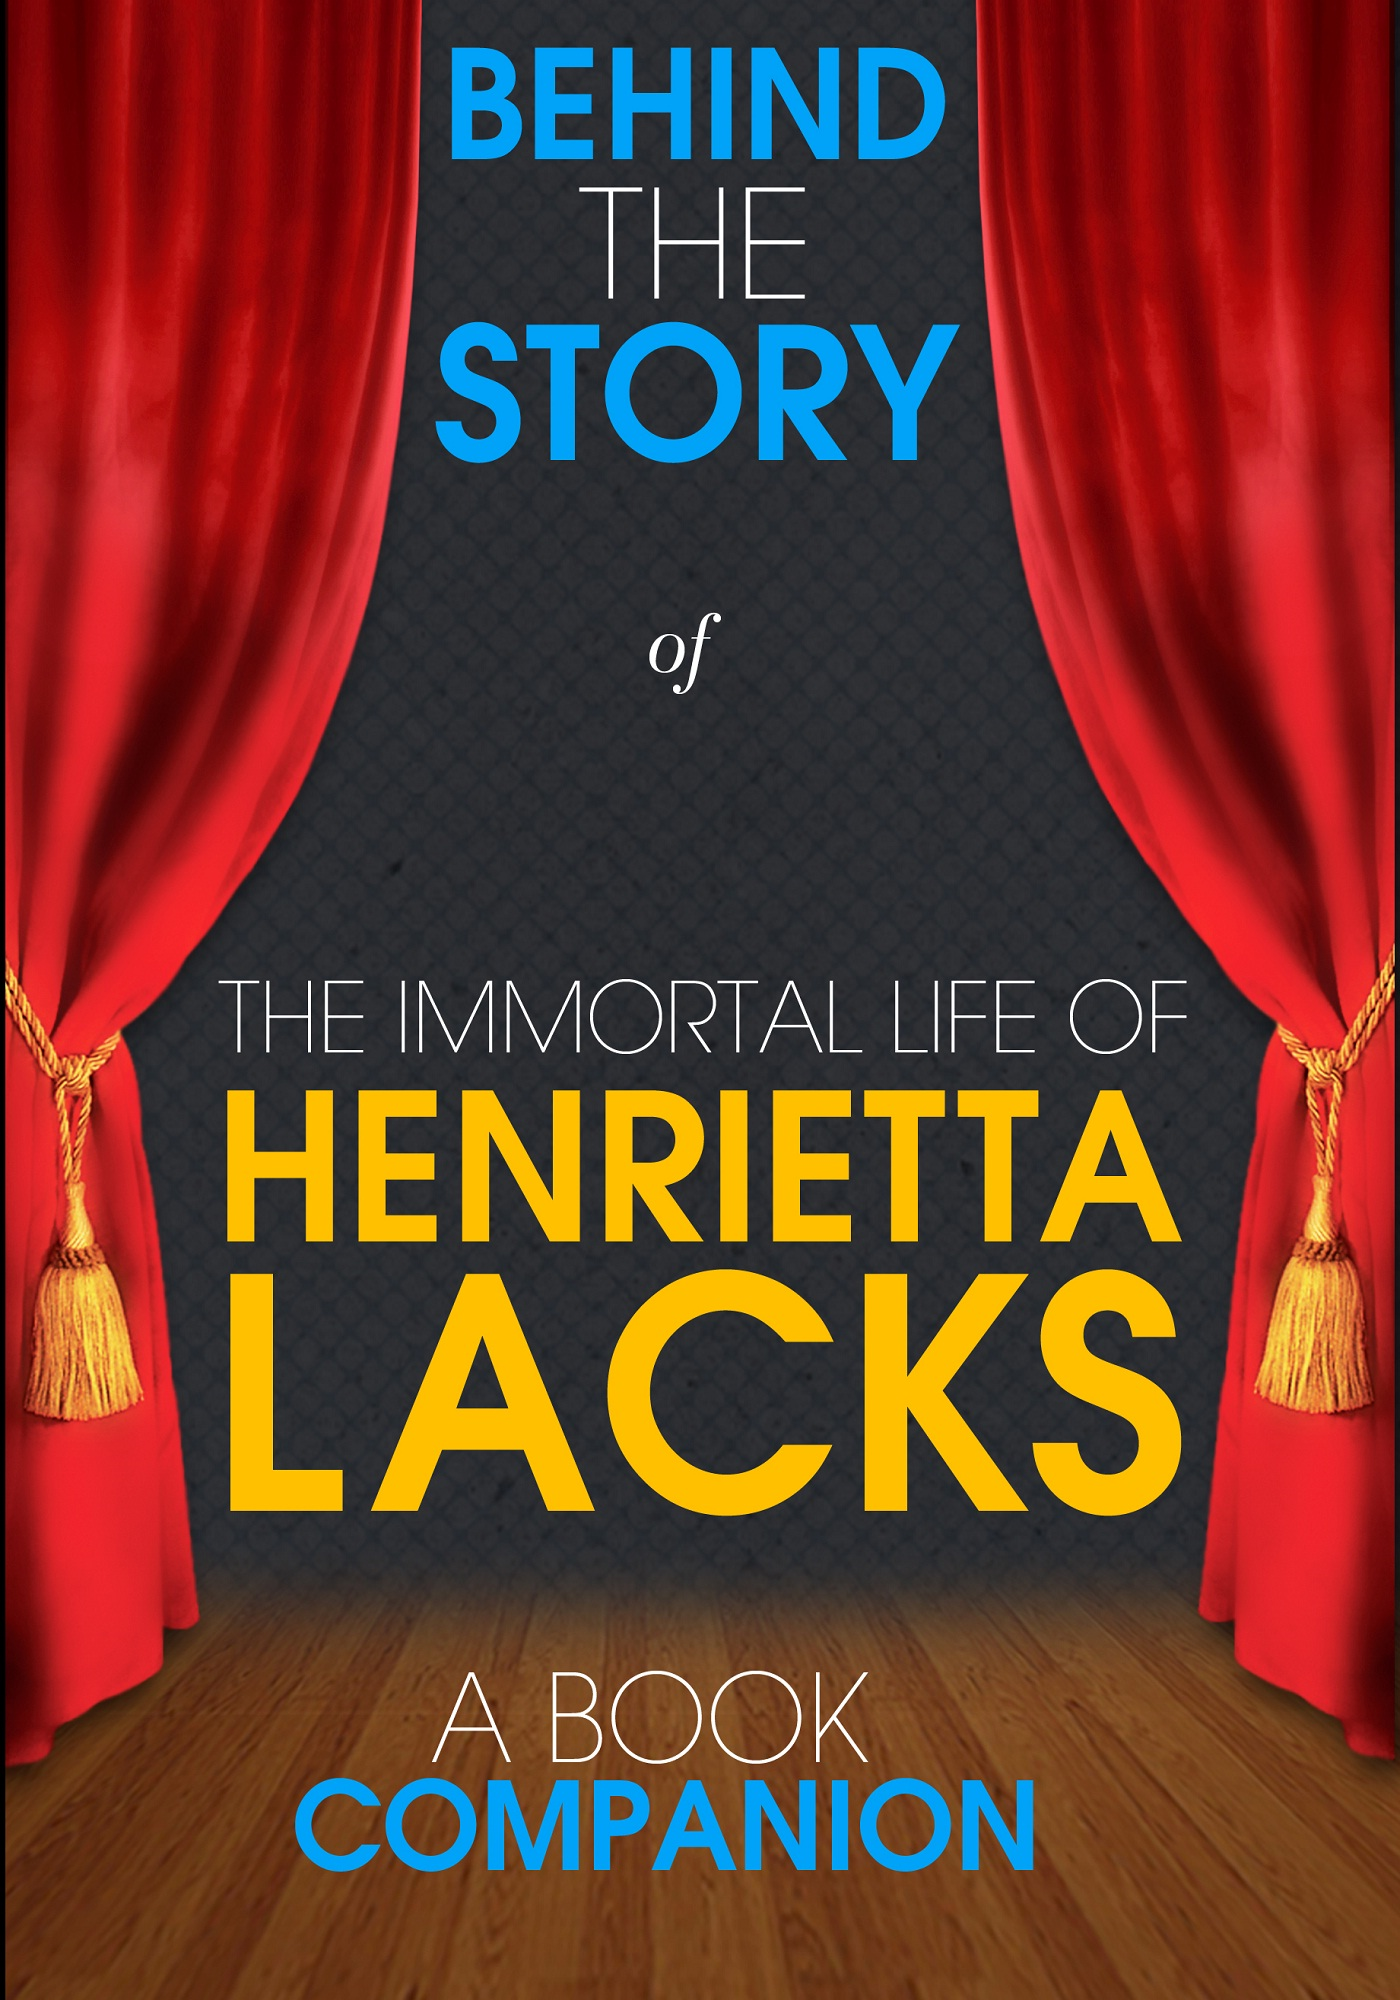 Behind the Story - The Immortal Life of Henrietta Lacks - Behind the Story (A Book Companion)